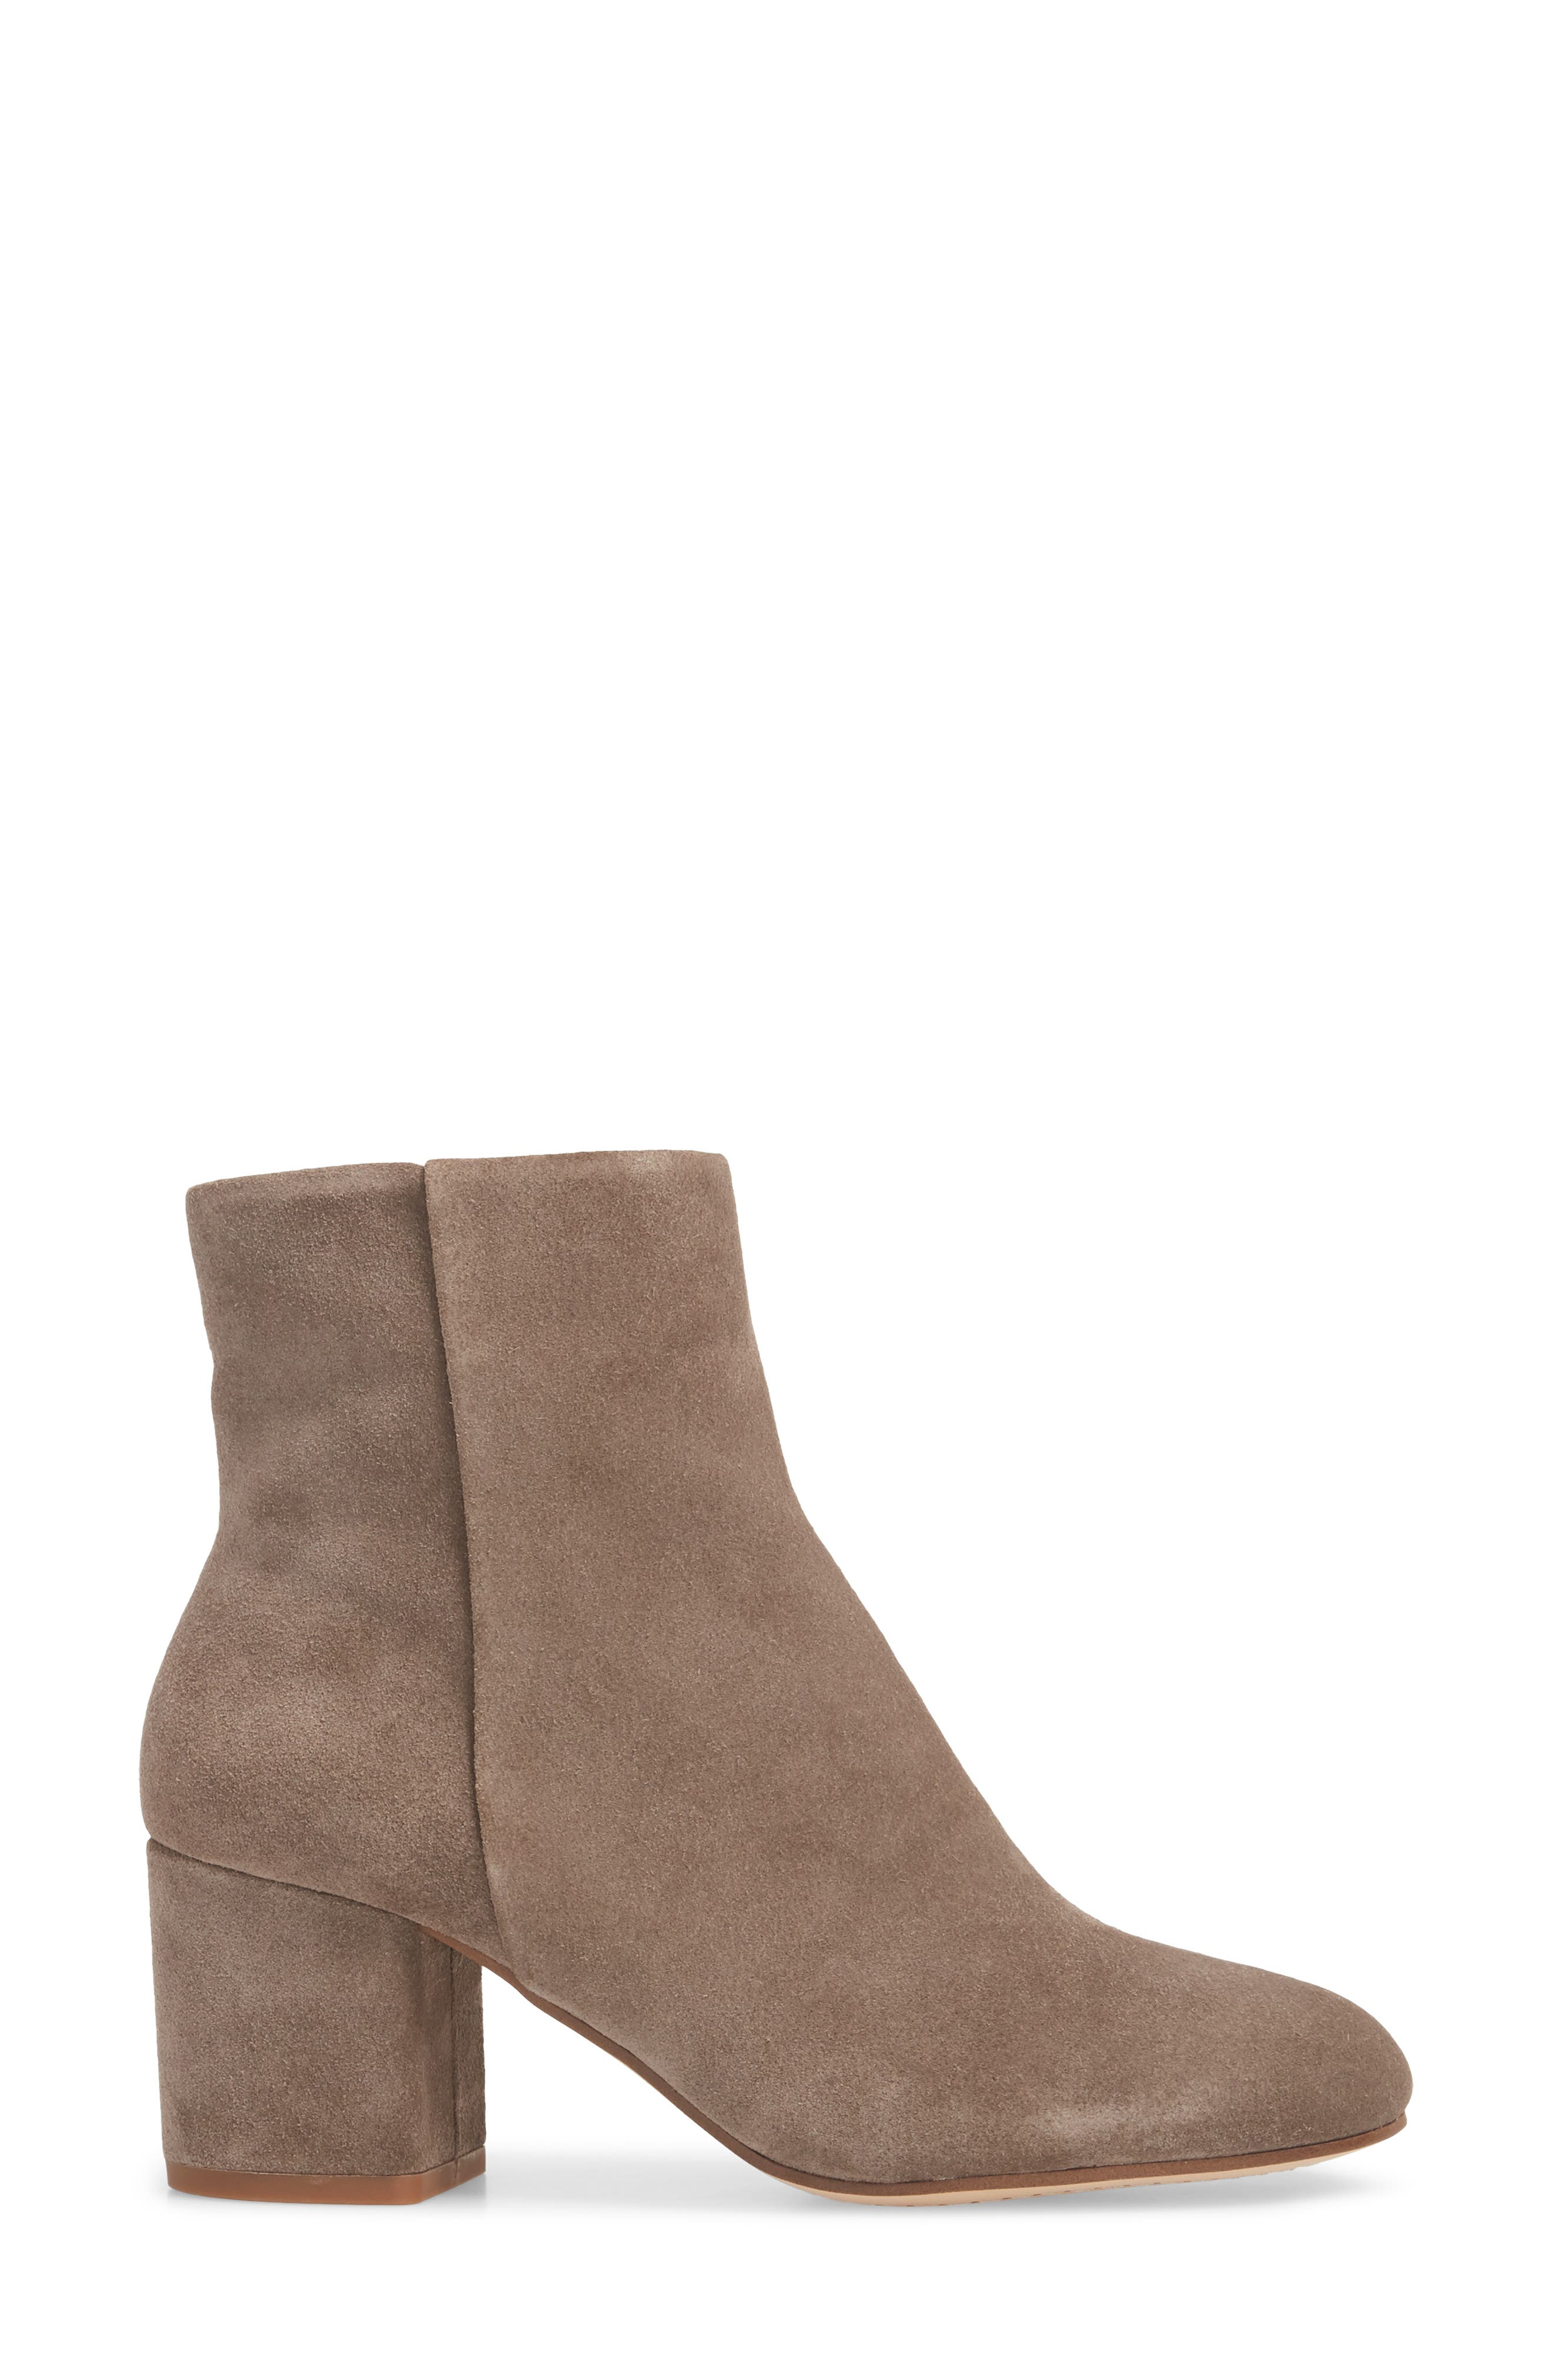 Nixie Bootie,                             Alternate thumbnail 3, color,                             LIGHT CHARCOAL SUEDE